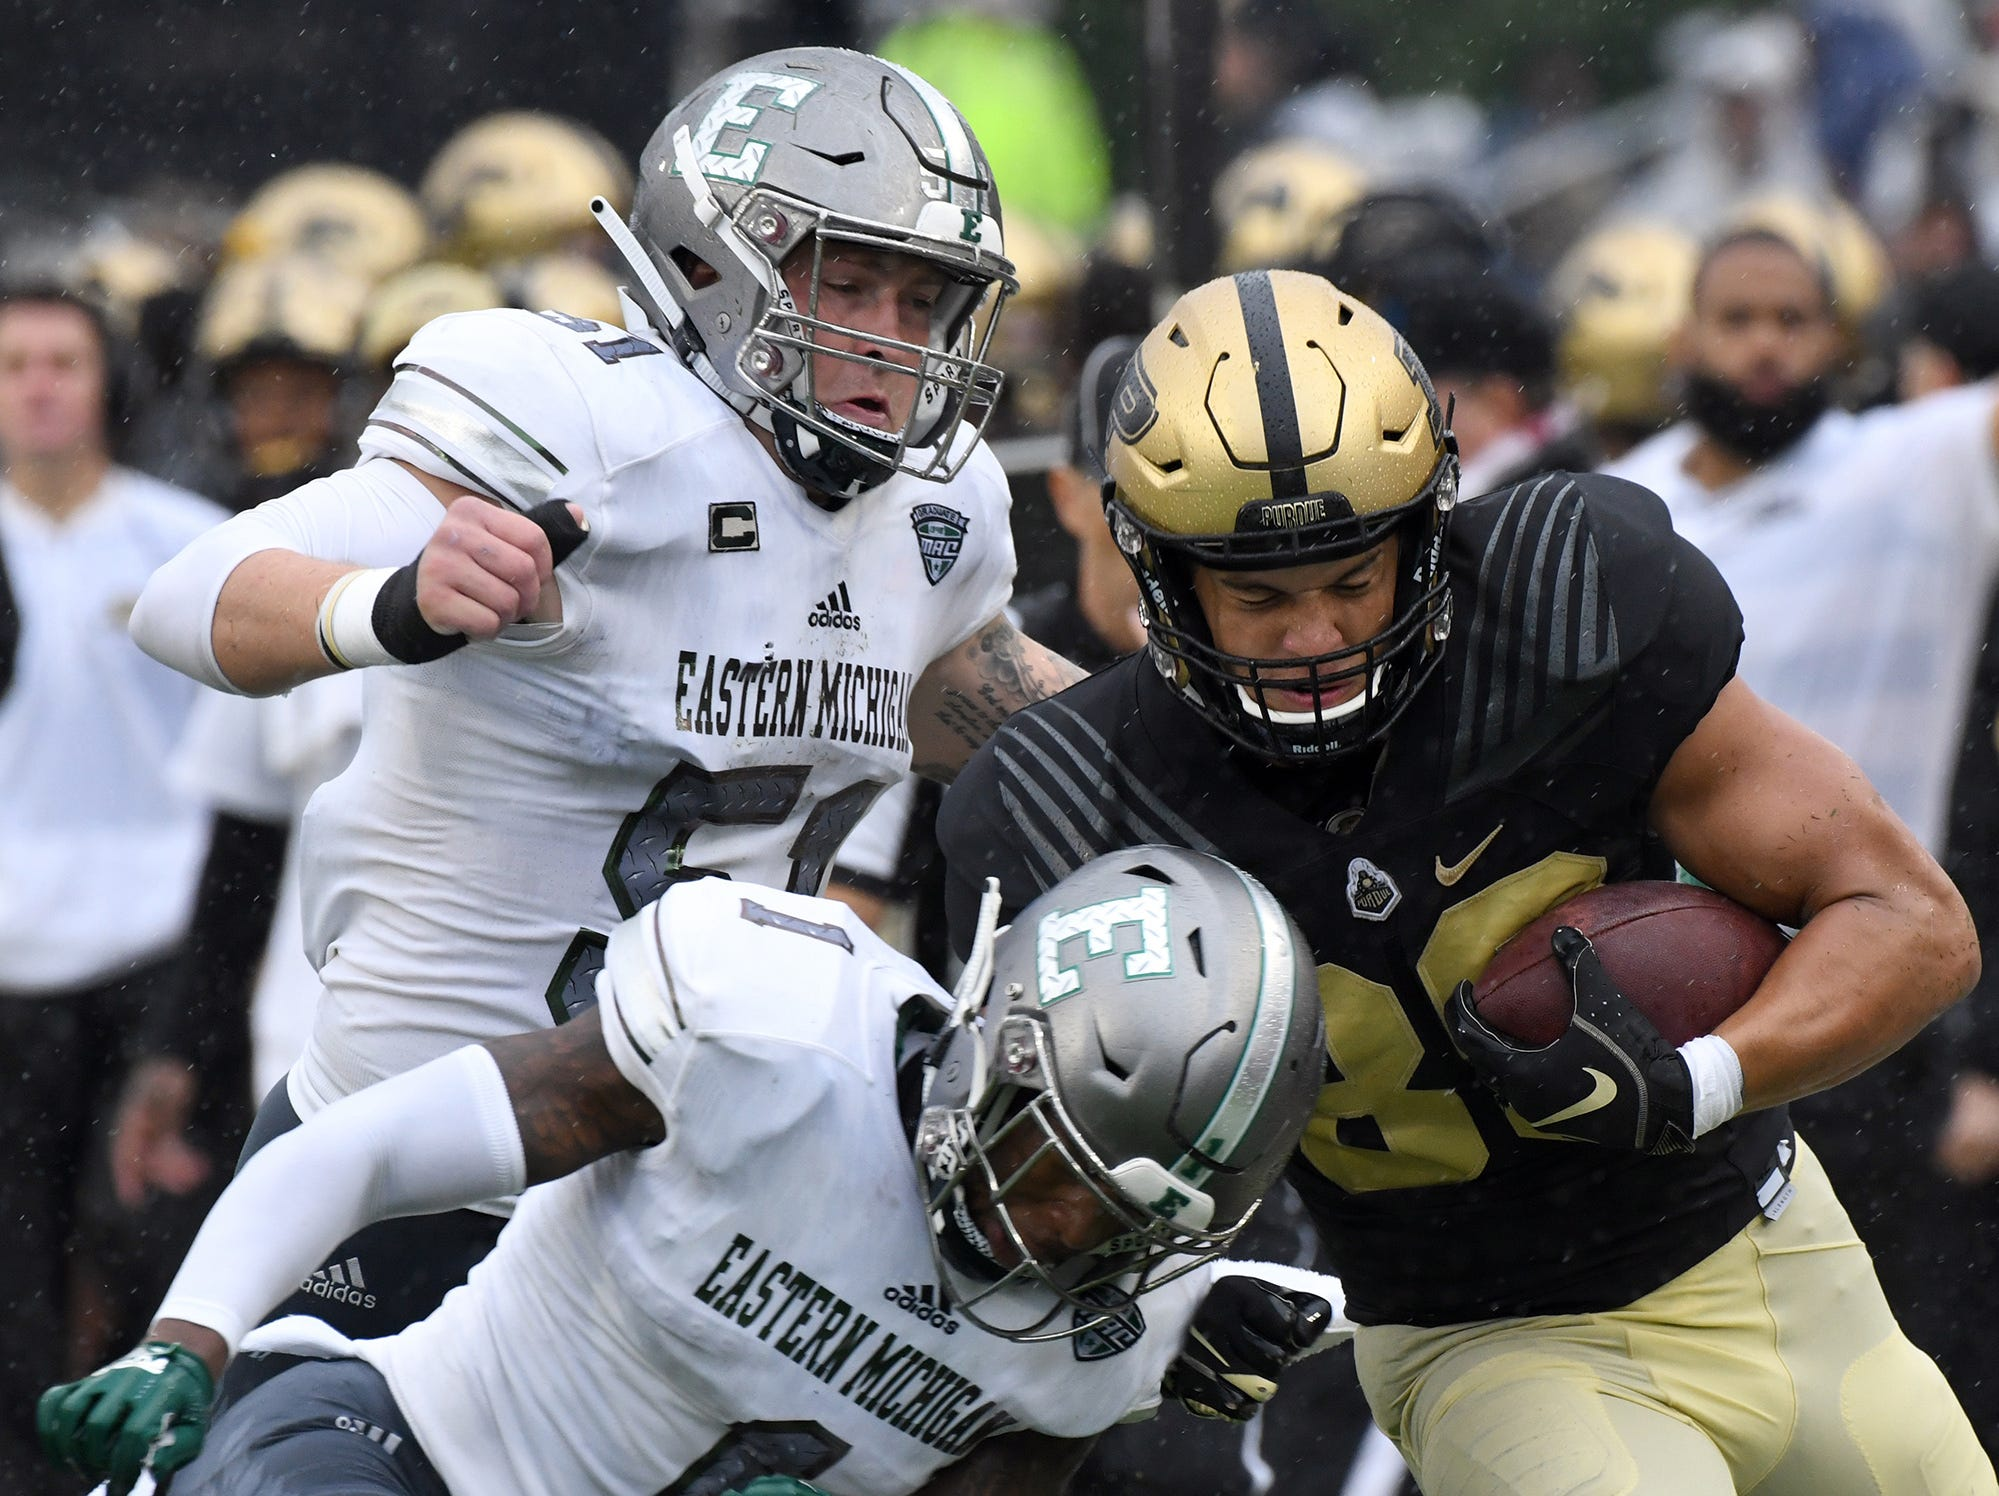 Purdue's Brycen Hopkins runs for yardage against Eastern Michigan in West Lafayette on September 8, 2018. Purdue lost 20-19.